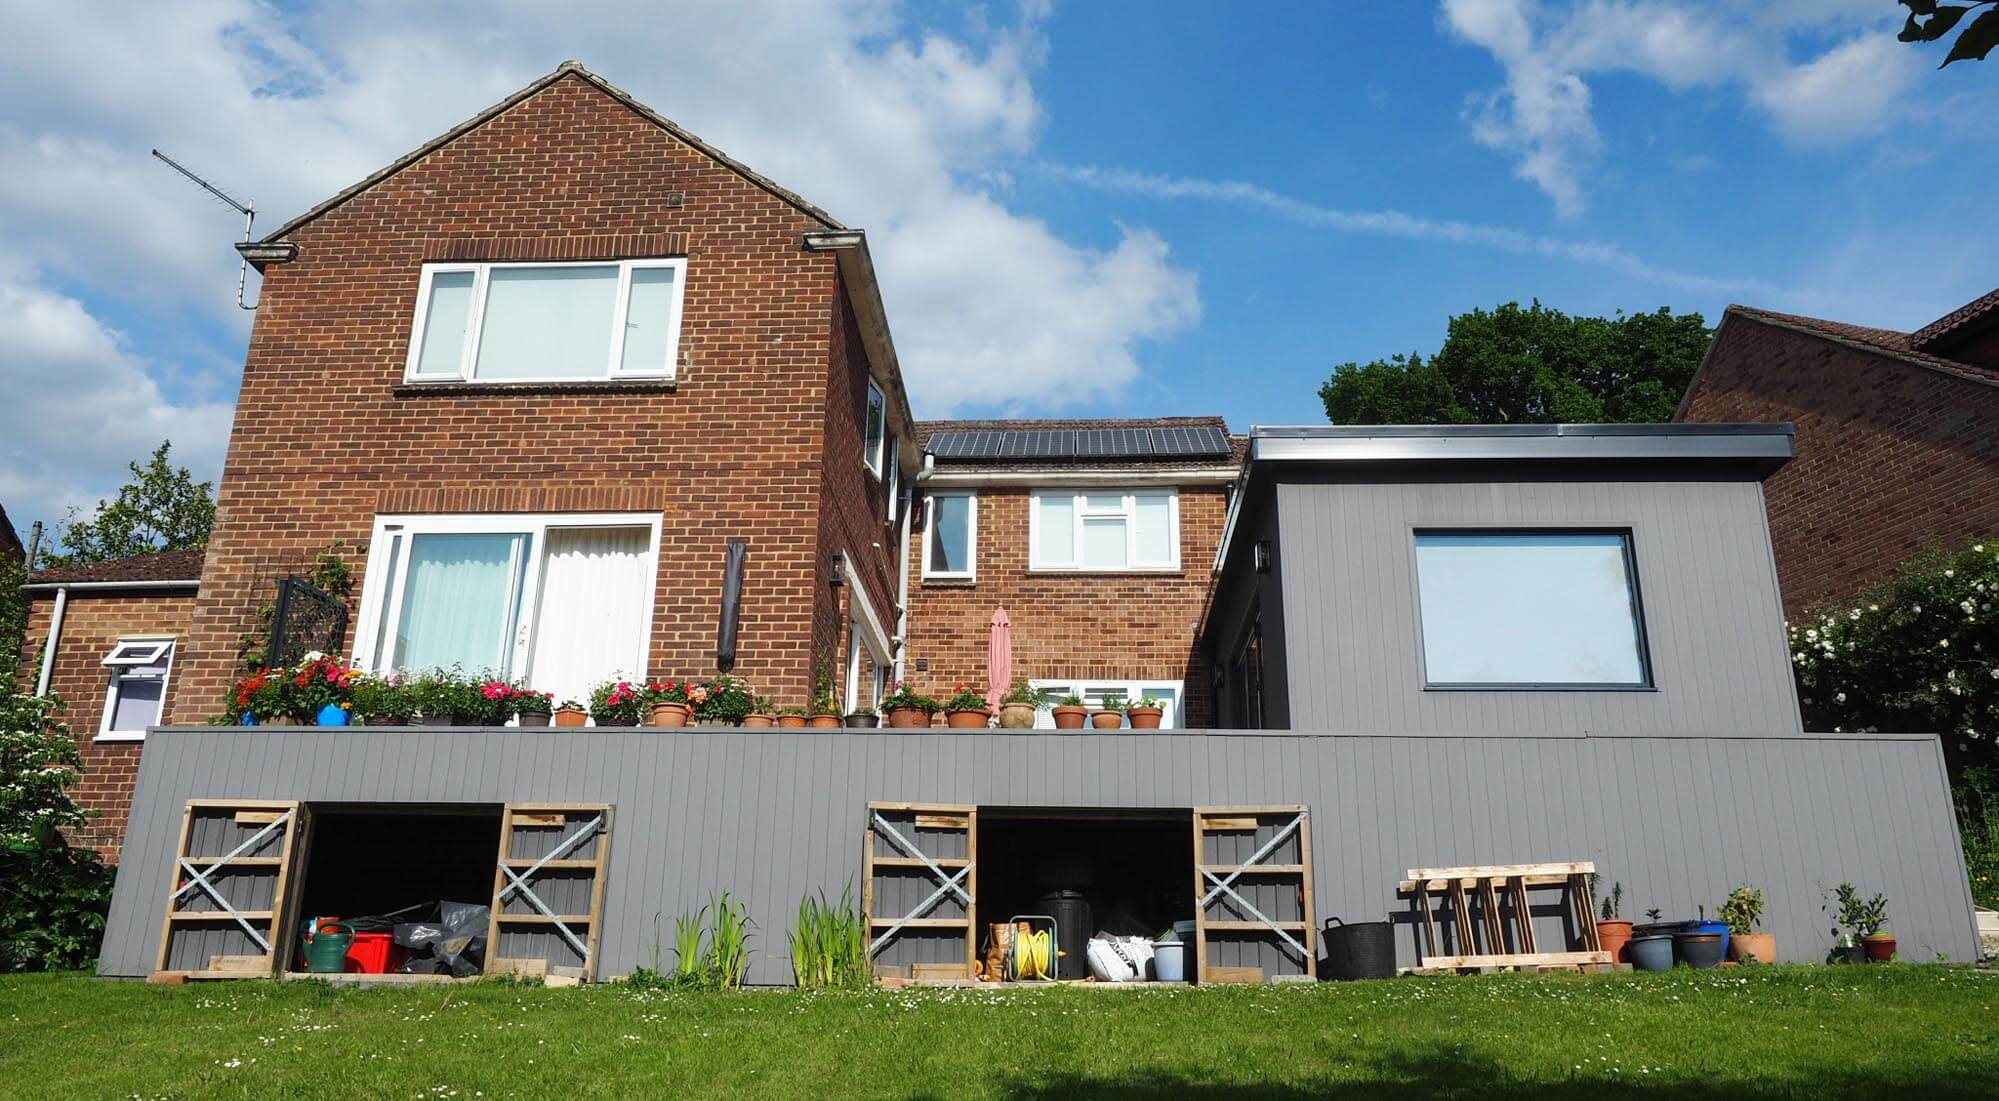 Studio and extended patio storage cladding